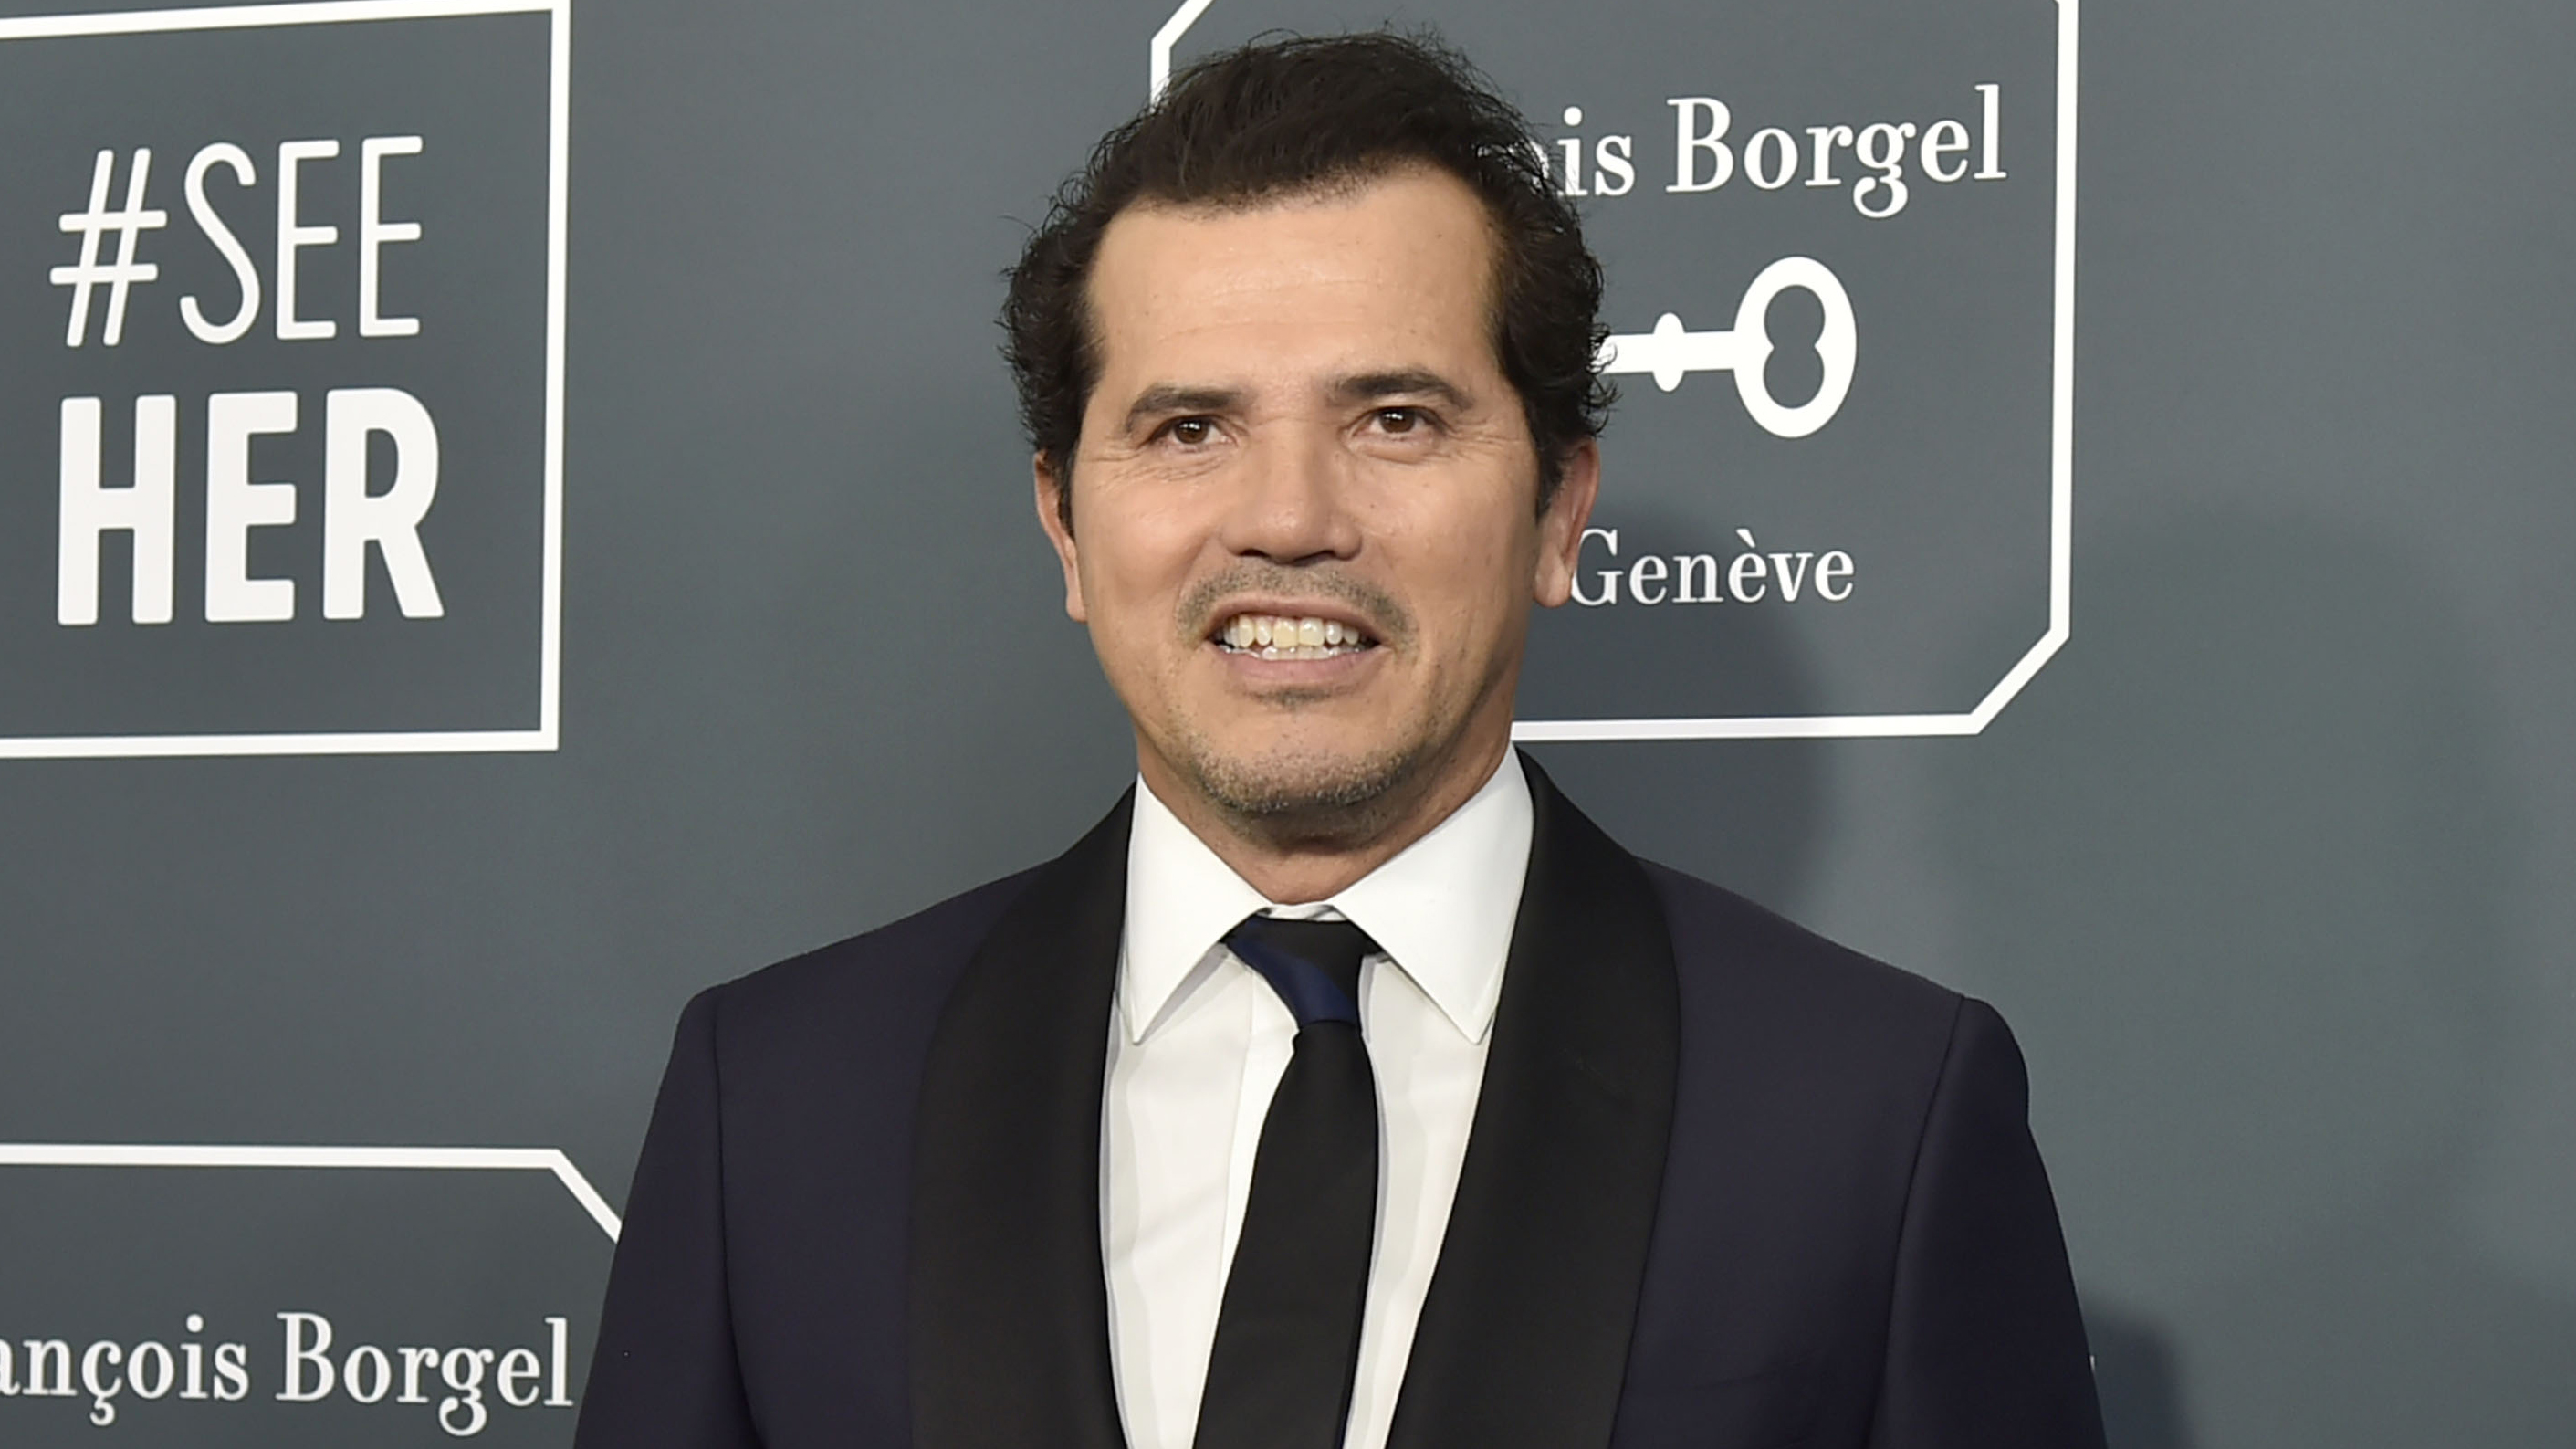 John Leguizamo to boycott the Emmys over lack of Latinx representation: 'What's the point?'